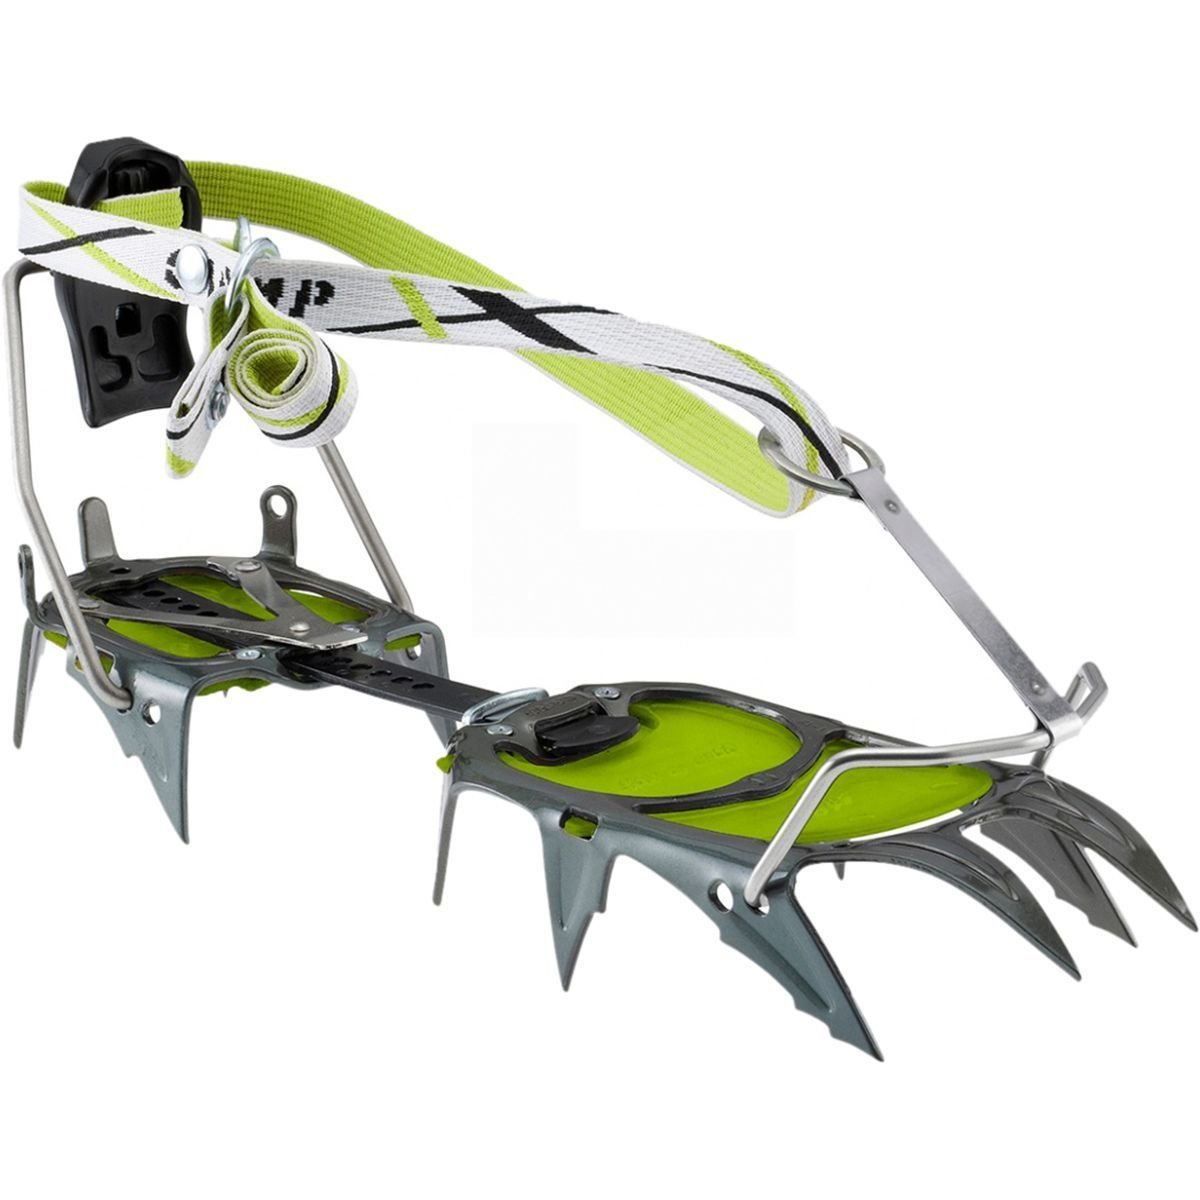 CAMP C12 Semi-Automatic Crampons - Green